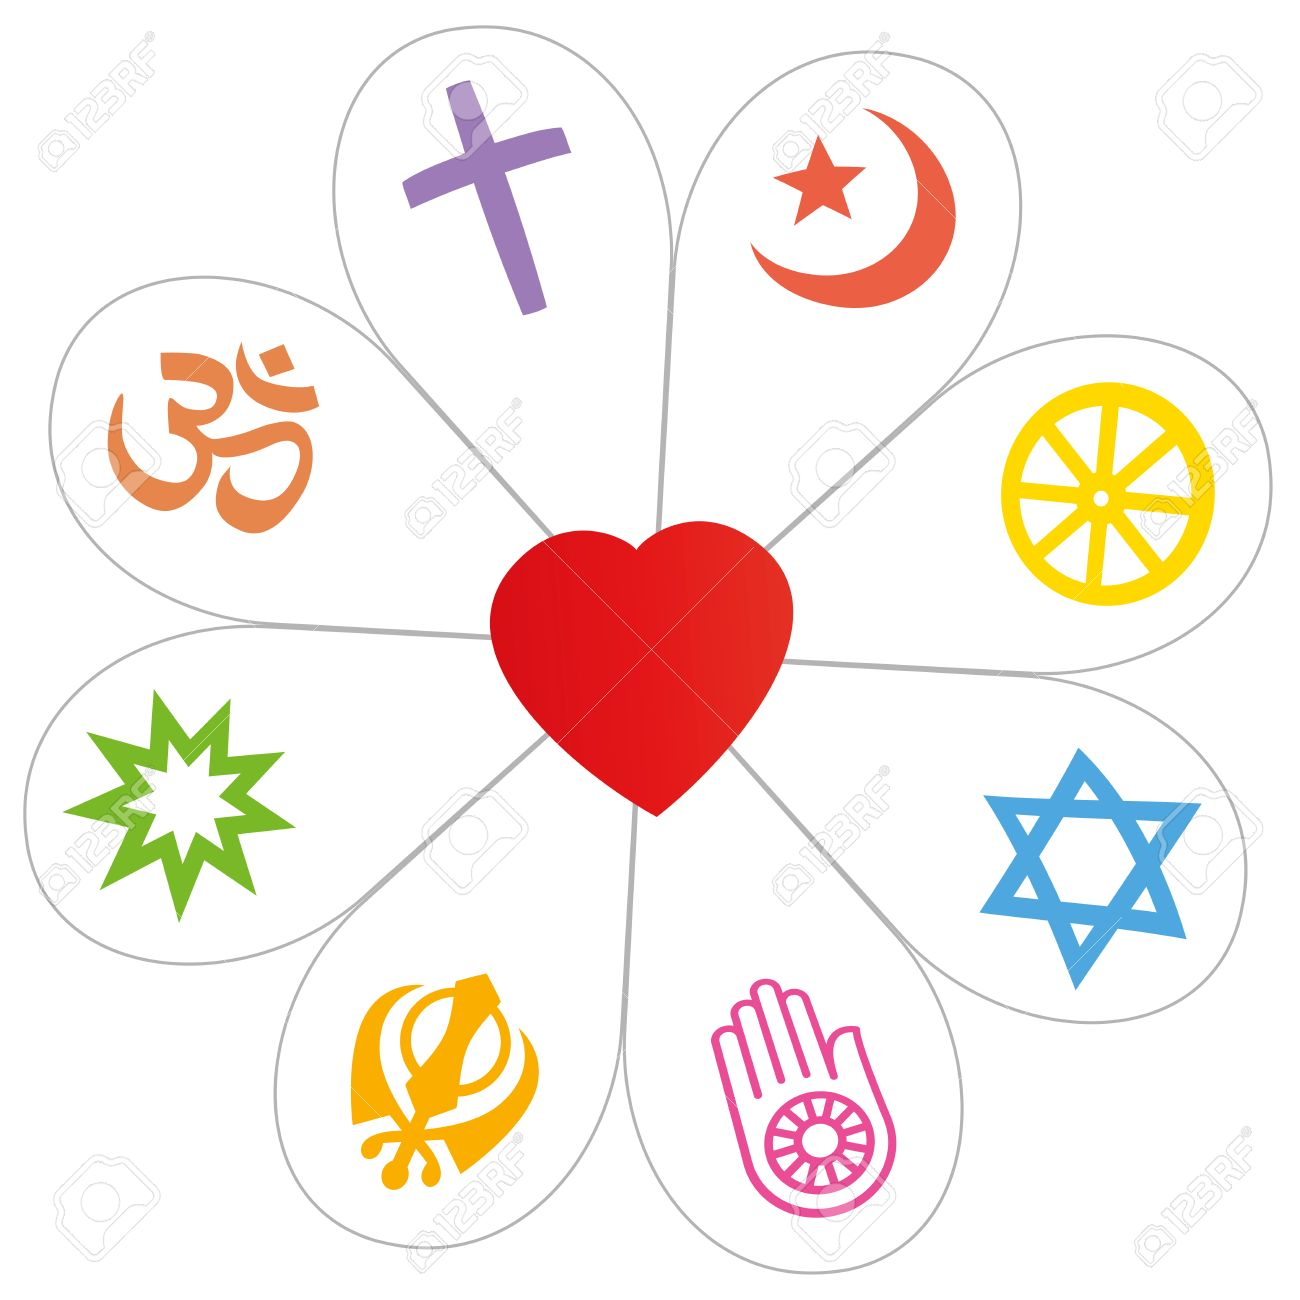 Religious symbols did form a flower with a heart as a symbol religious symbols did form a flower with a heart as a symbol for religious unity or biocorpaavc